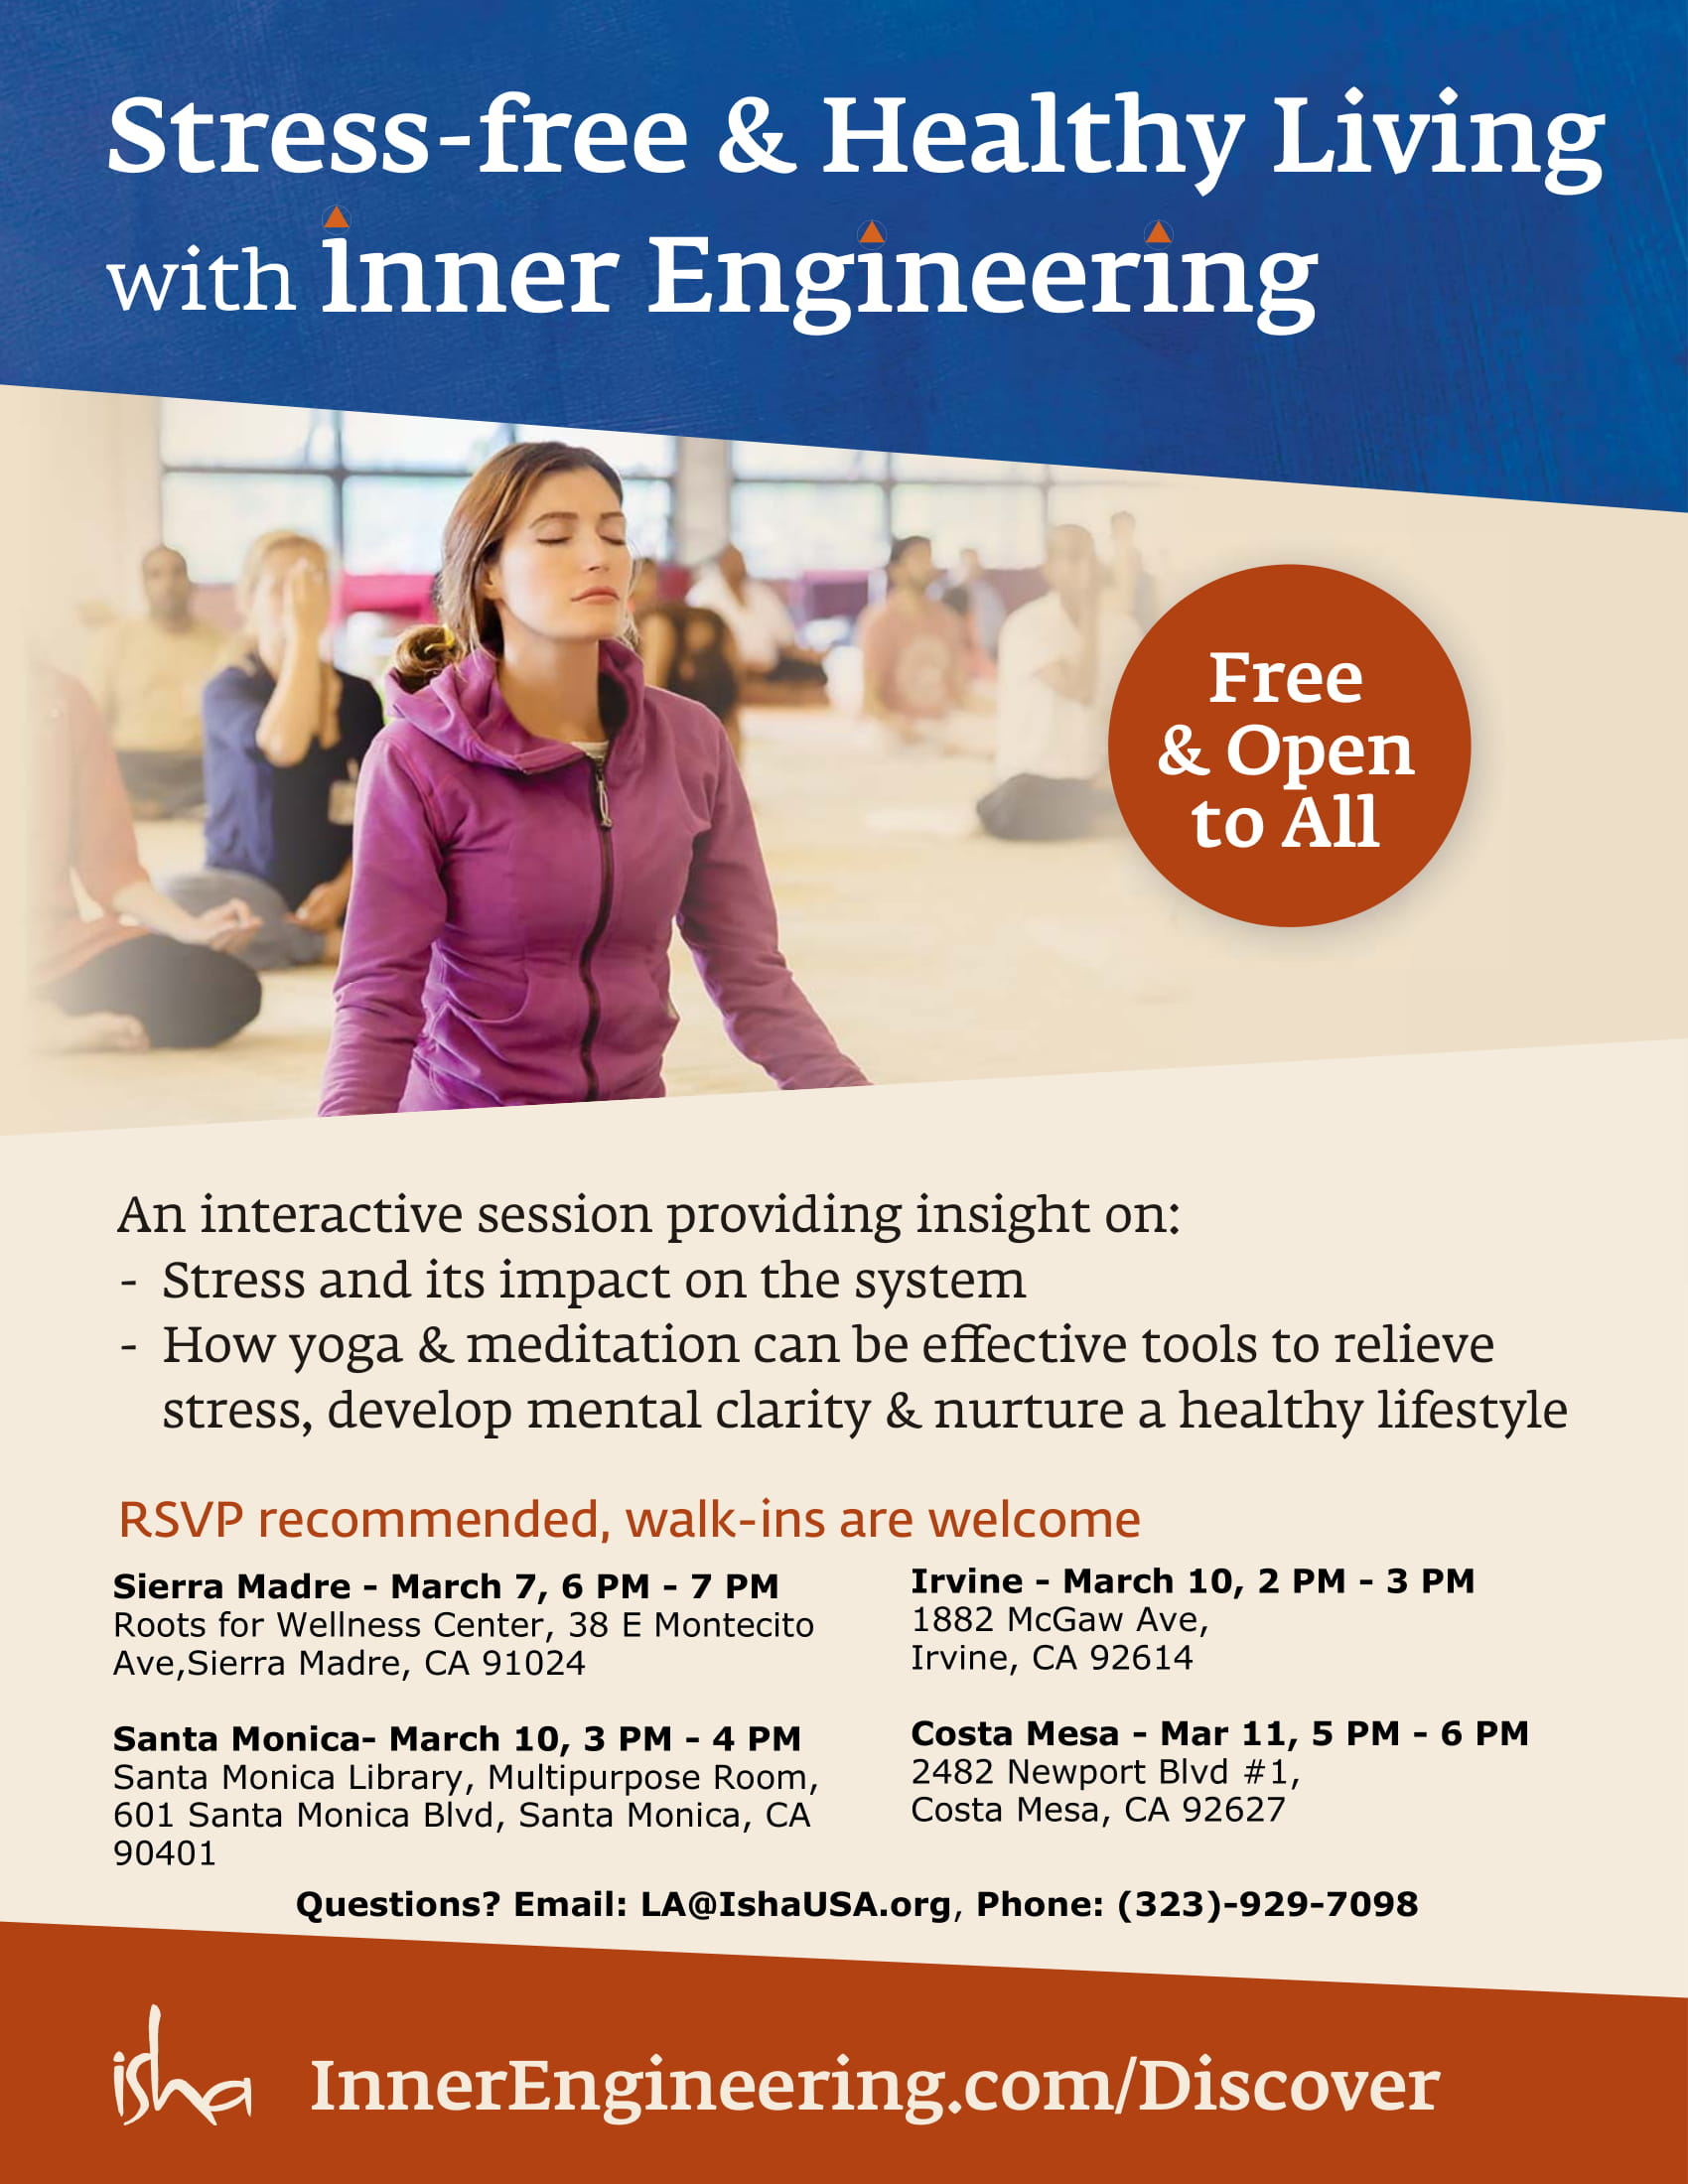 Stress free & Healthy Living with Inner Engineering